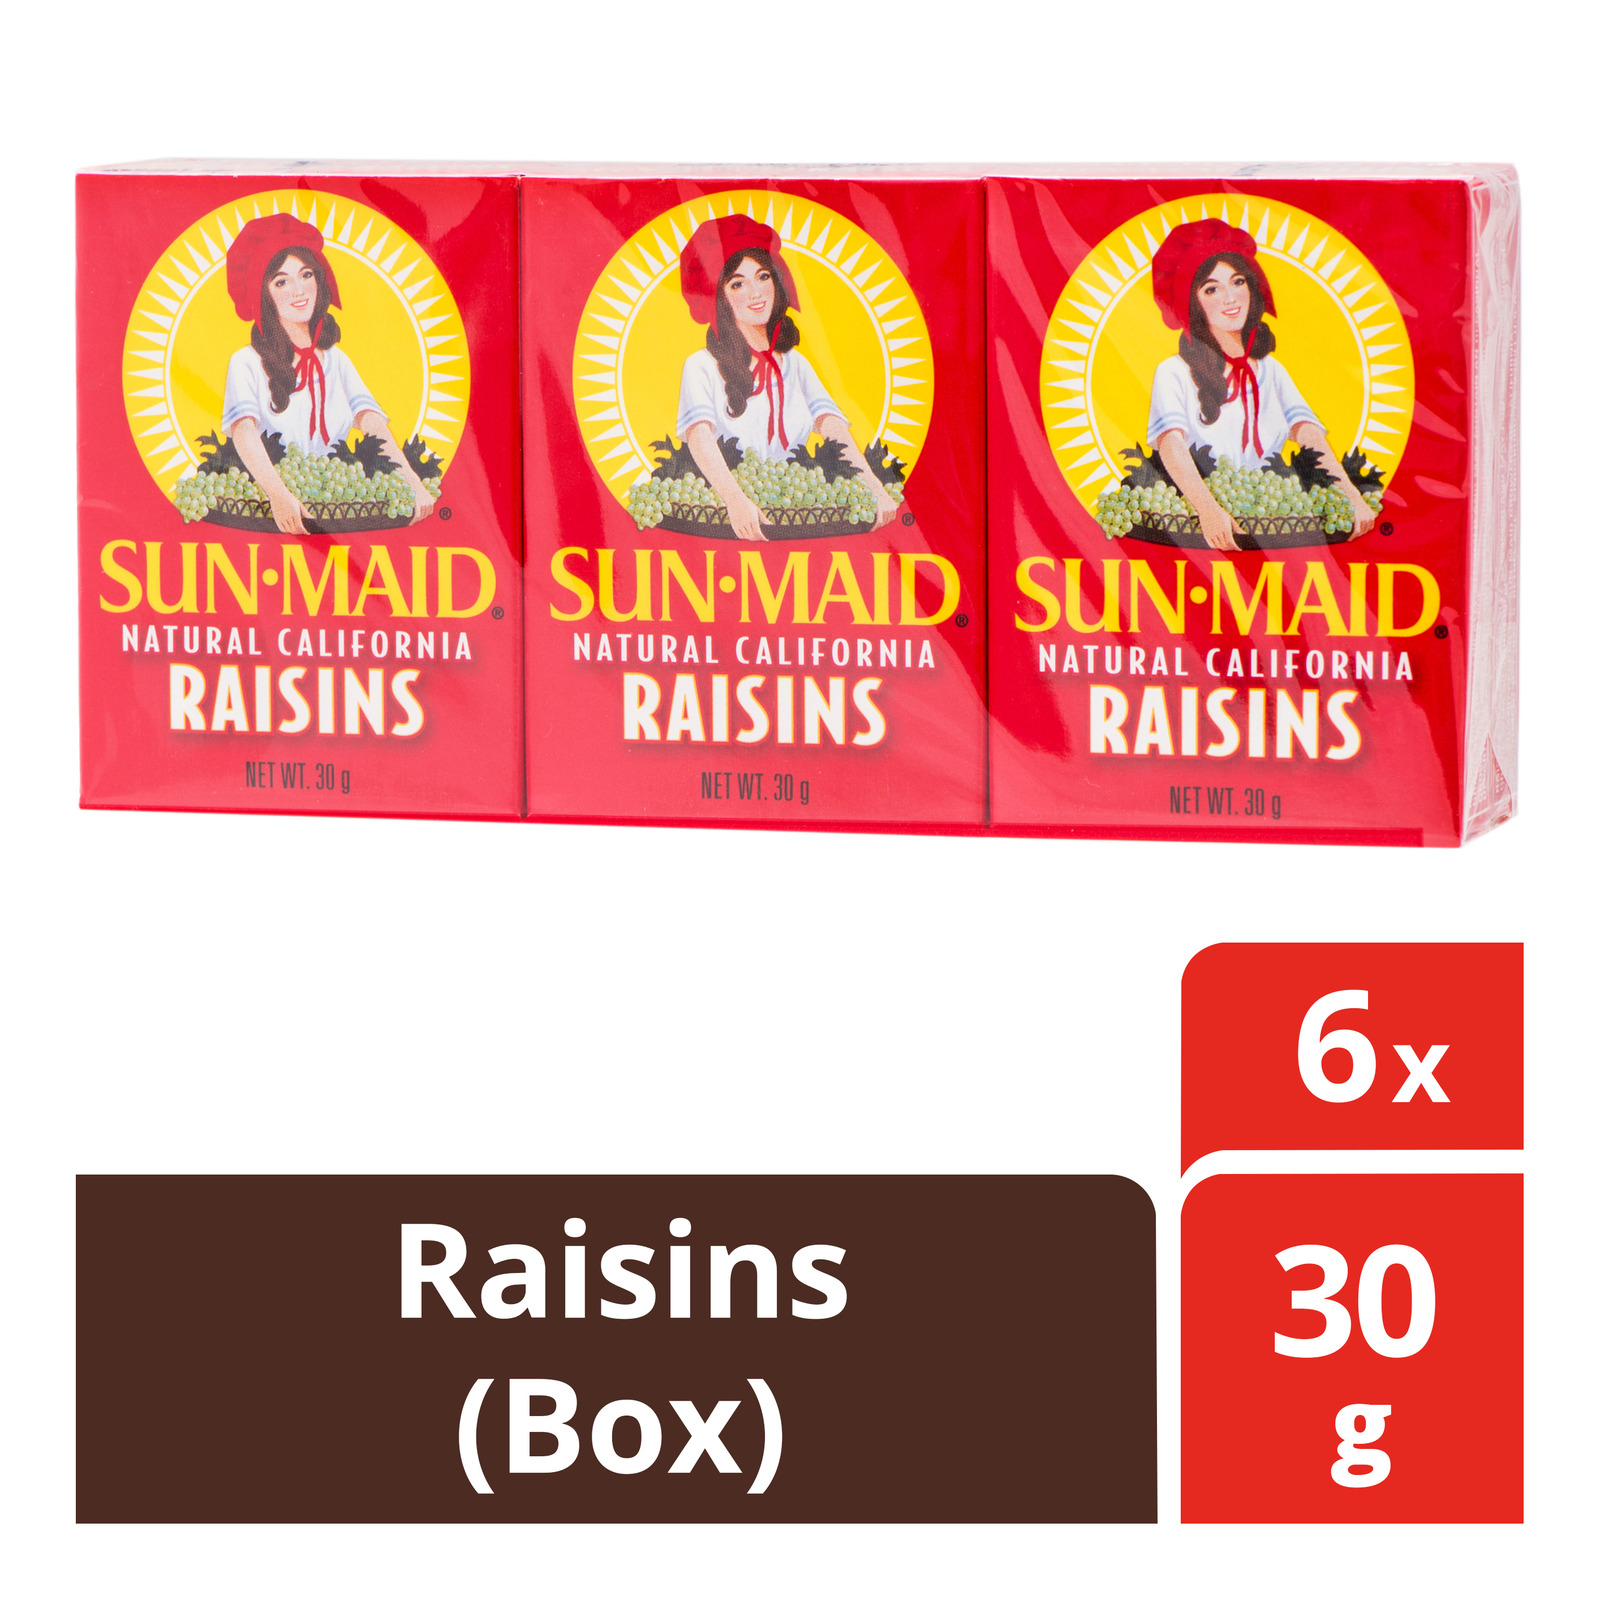 Sun-Maid Natural California Raisins - Box